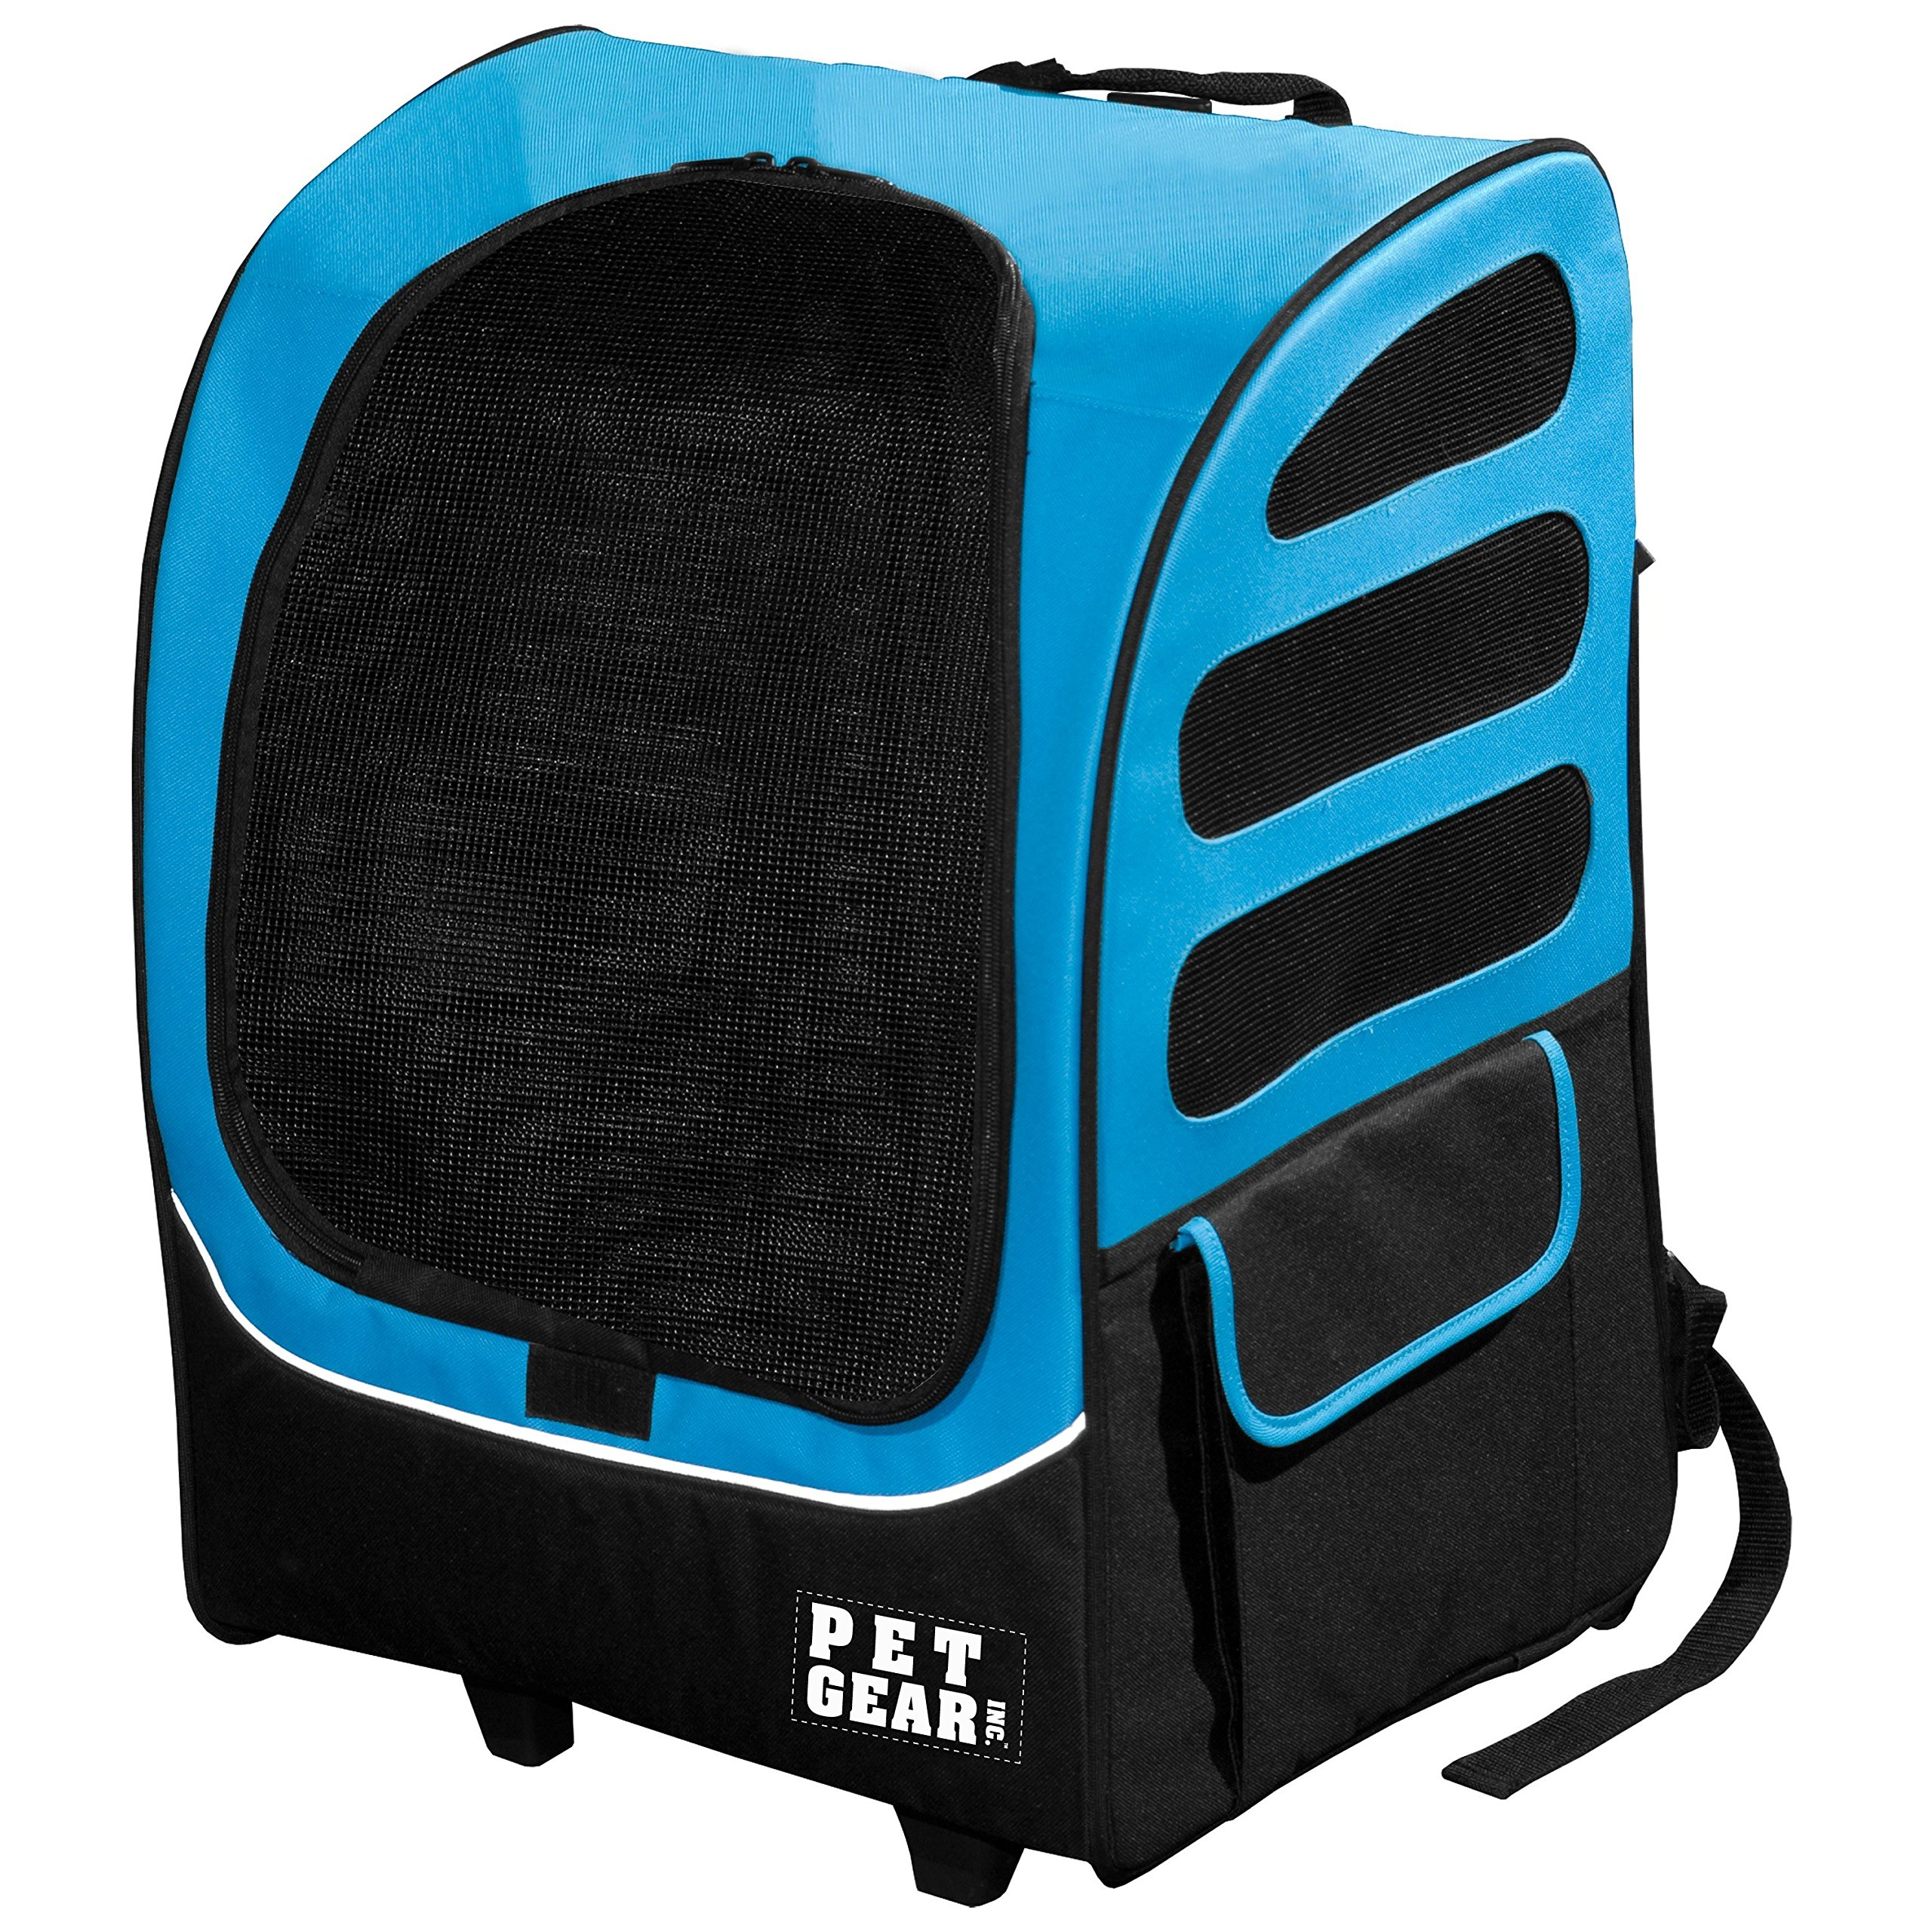 22x17.5x14 Inch Blue 5-in-1 I -Go2 Traveler Plus Pet Backpack And Carrier With Wheels, Telescoping Handle Pets Upto 25 Lbs Removable Plush Pad Seat Belt Buckle Backpack Tote Or Rolling Case, Nylon